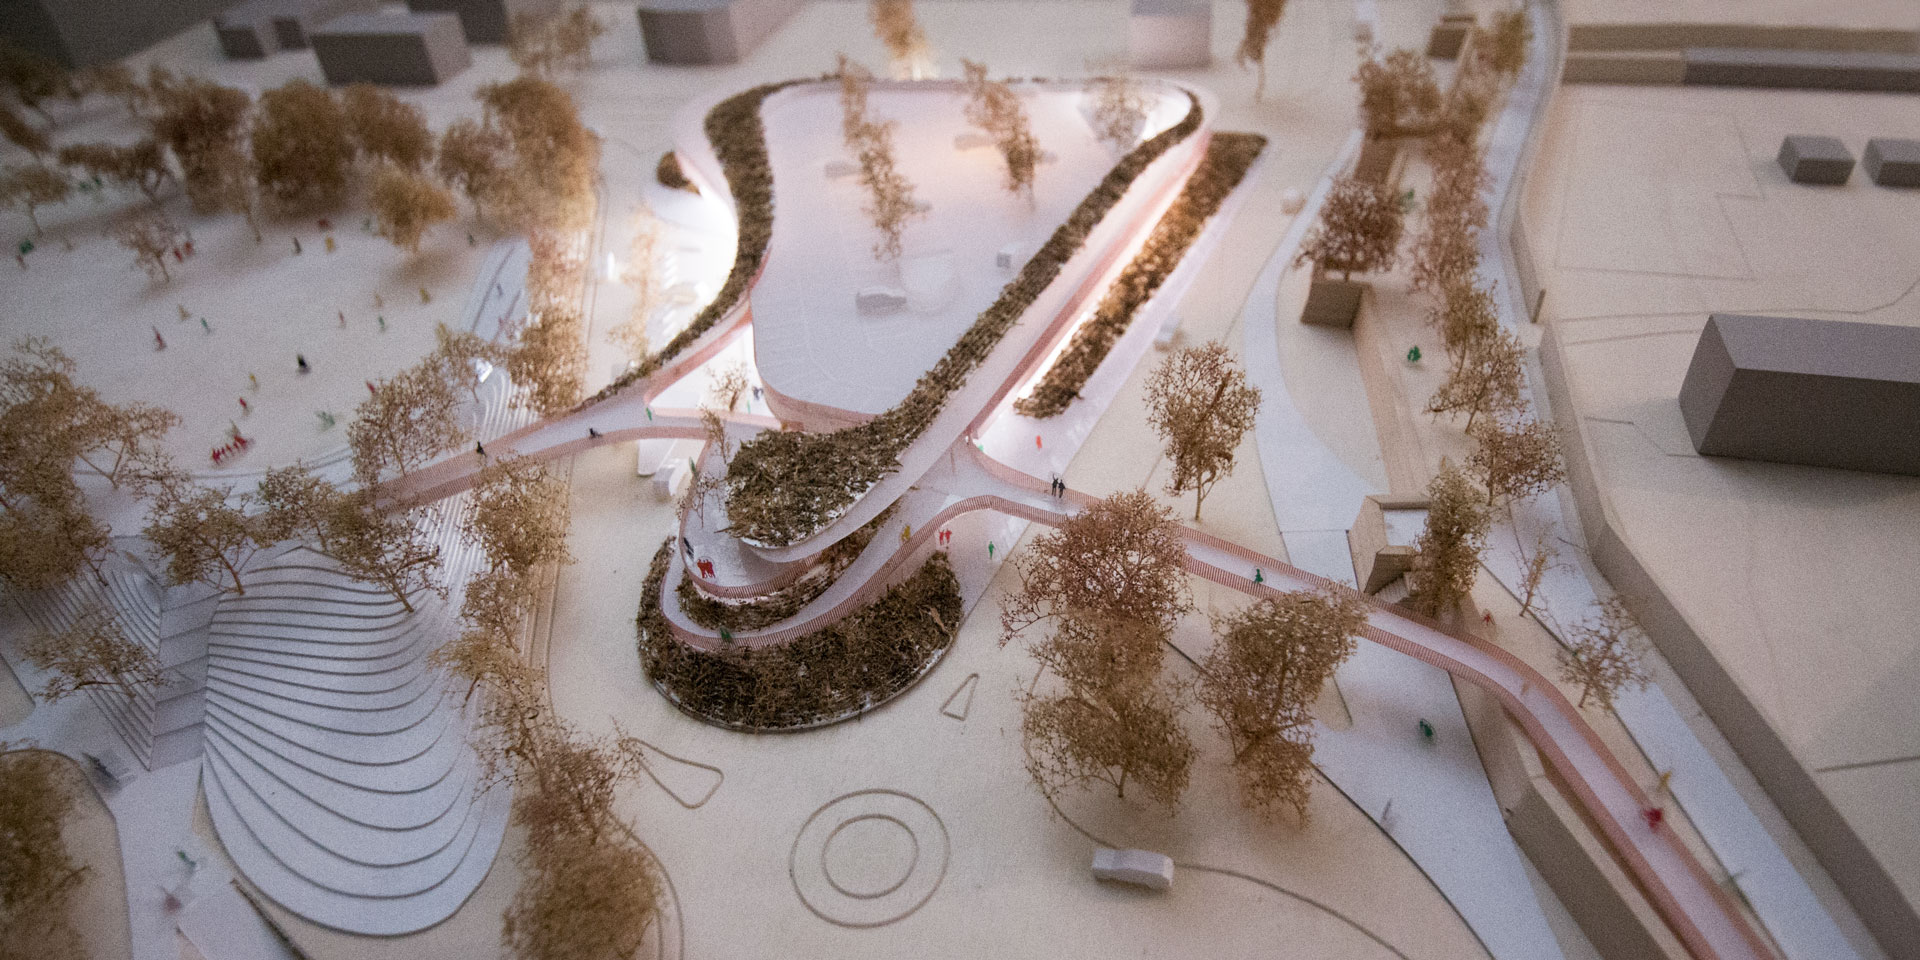 archinow_FOX_mixed-use_redevelopment_13